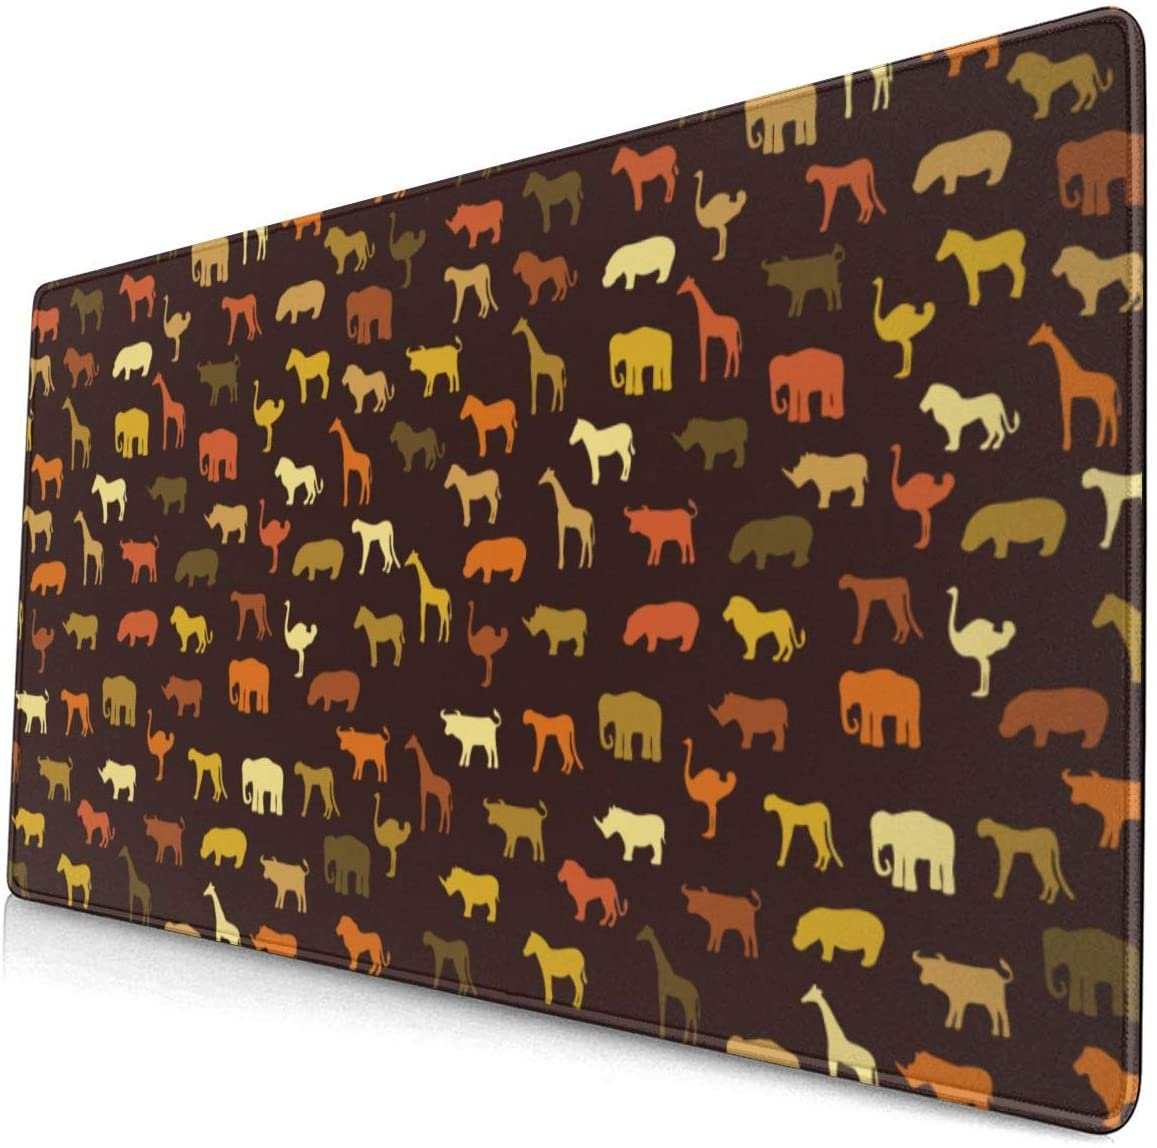 Large Size Mouse pad Anti-Slip Desk Mouse Mat Desk Protector Mat (Wildlife Animal World)